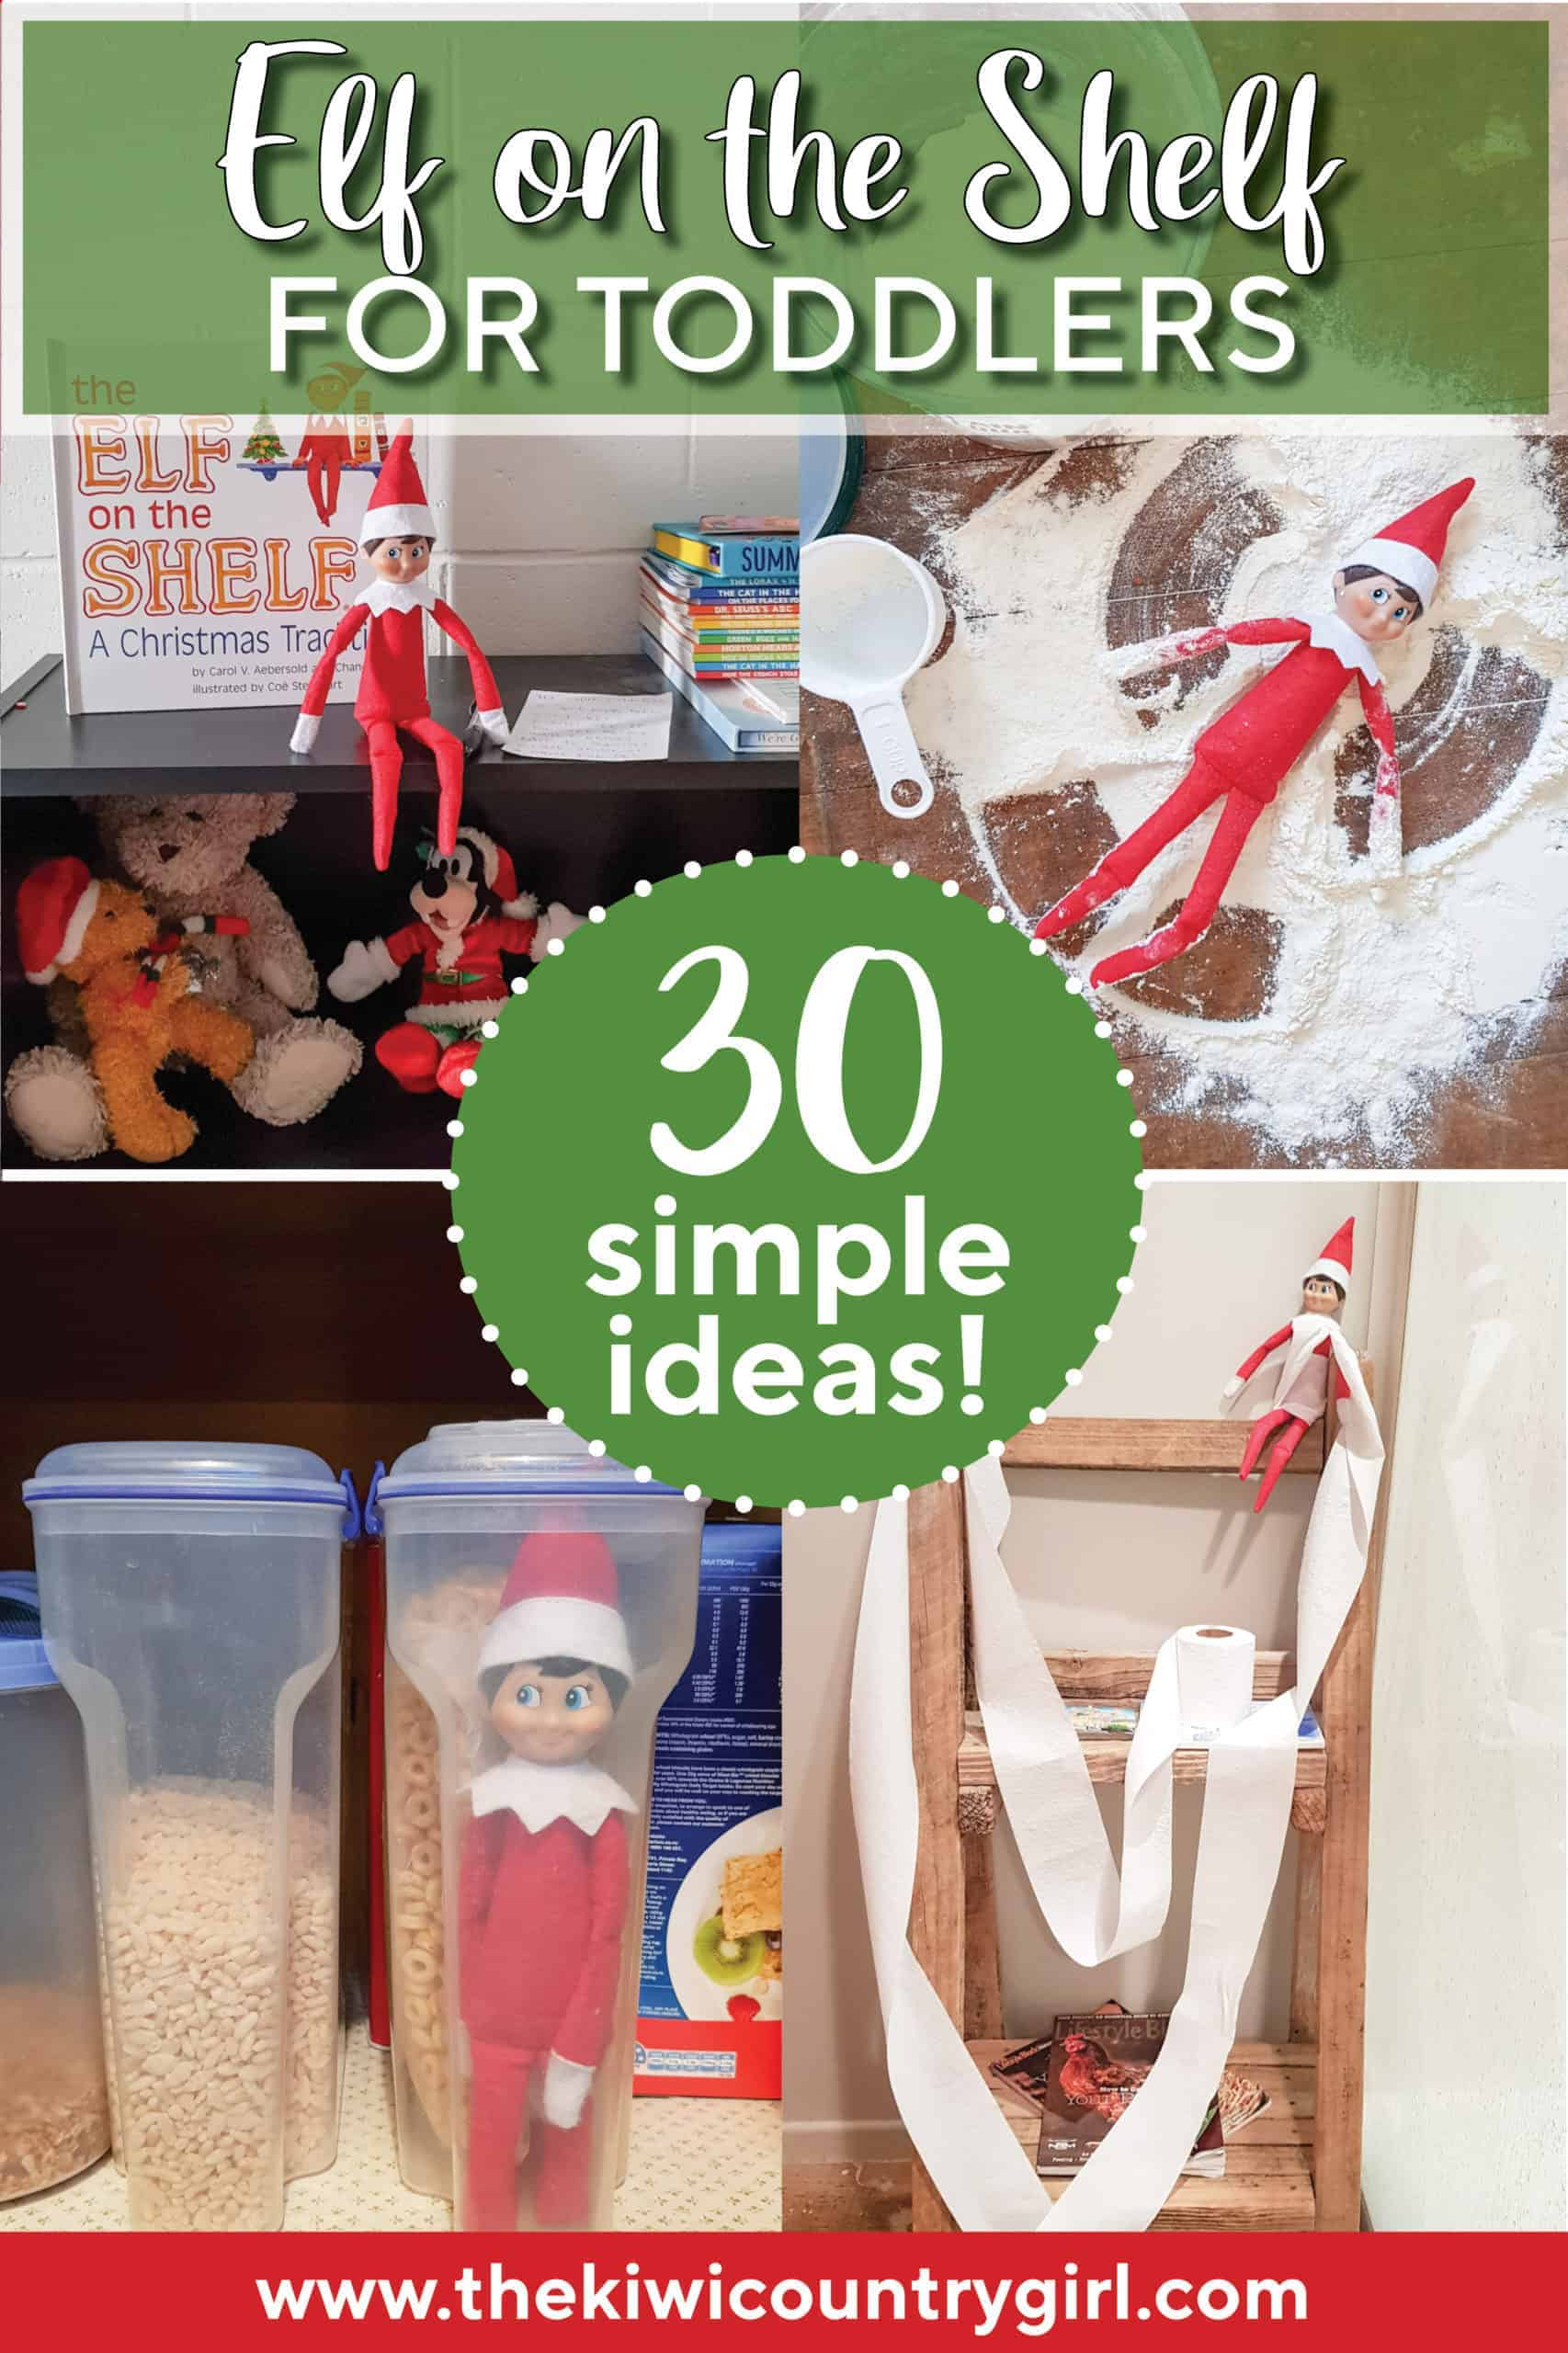 Collage with elf on the shelf ideas for toddlers